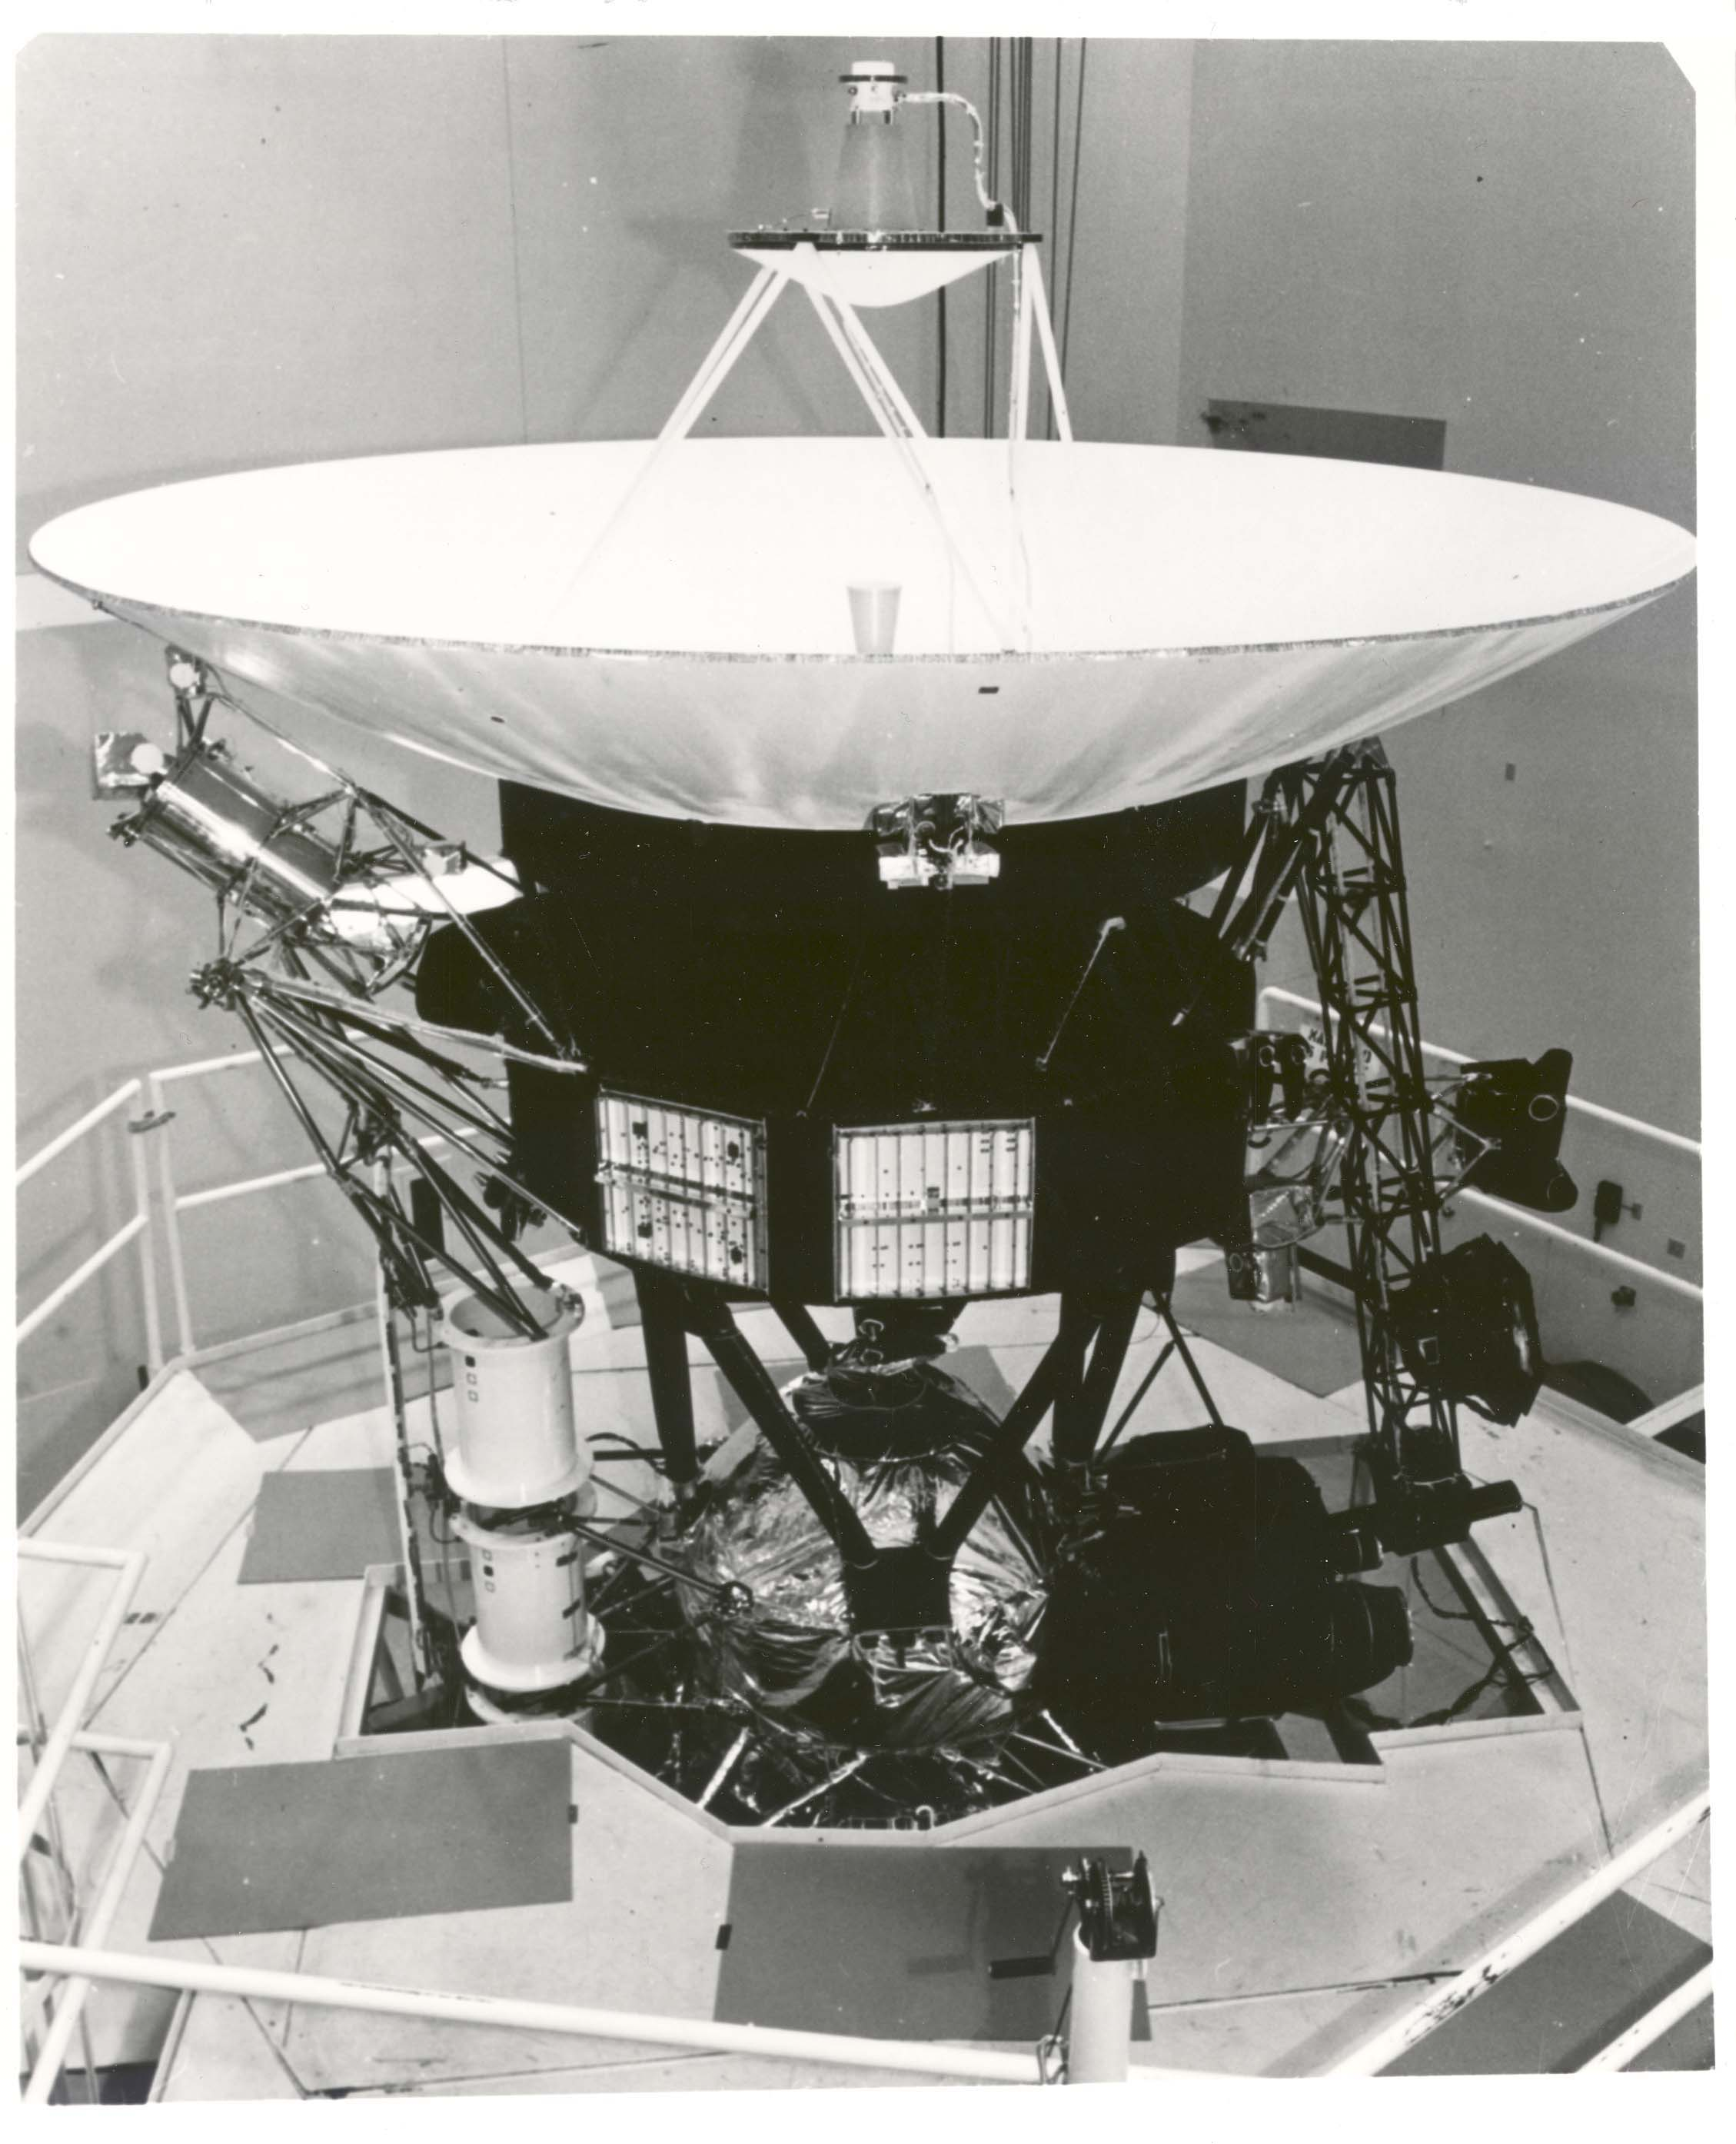 Voyager_Spacecraft_During_Vibration_Testing_-_GPN-2003-000008.jpg